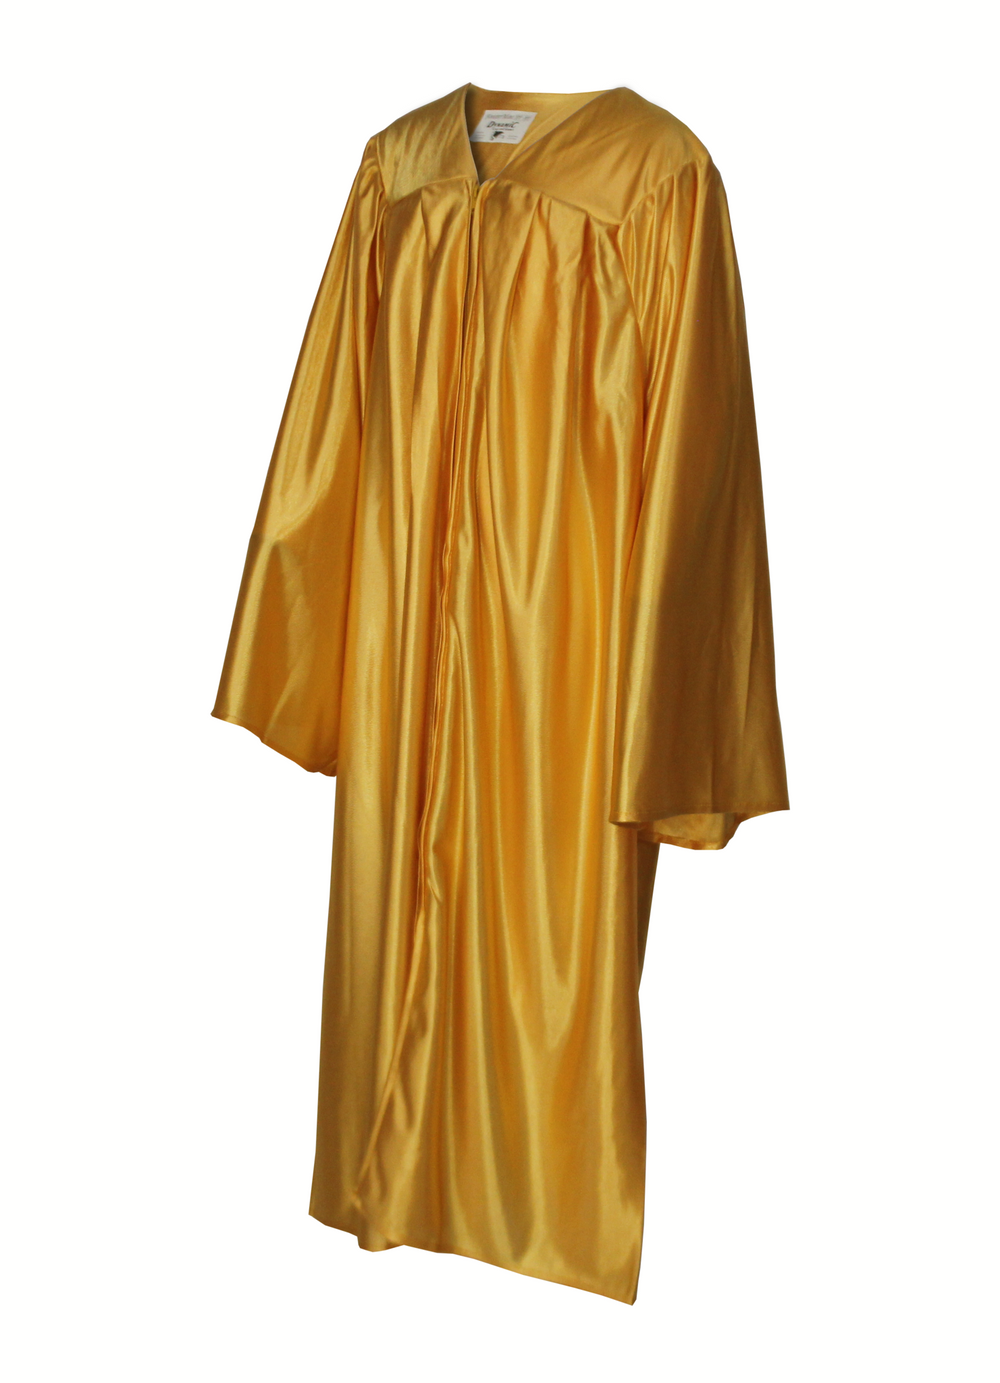 Shiny Antique Gold Choir Gown